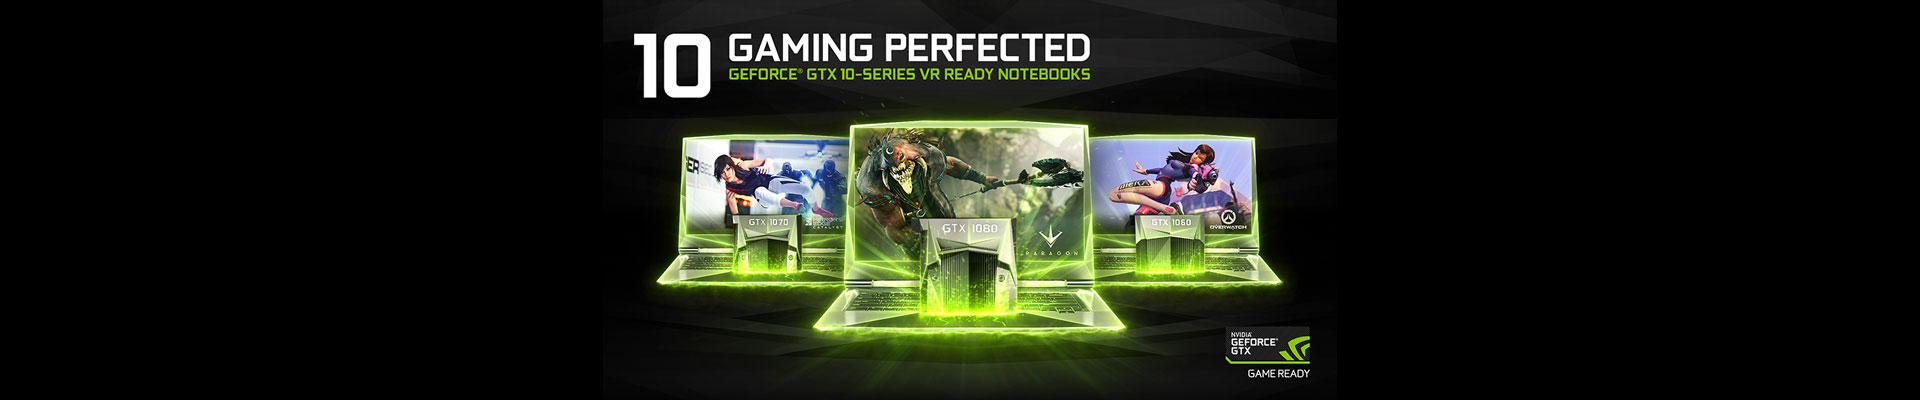 Nvidia Nvidia GeForce GTX 10 Notebooks